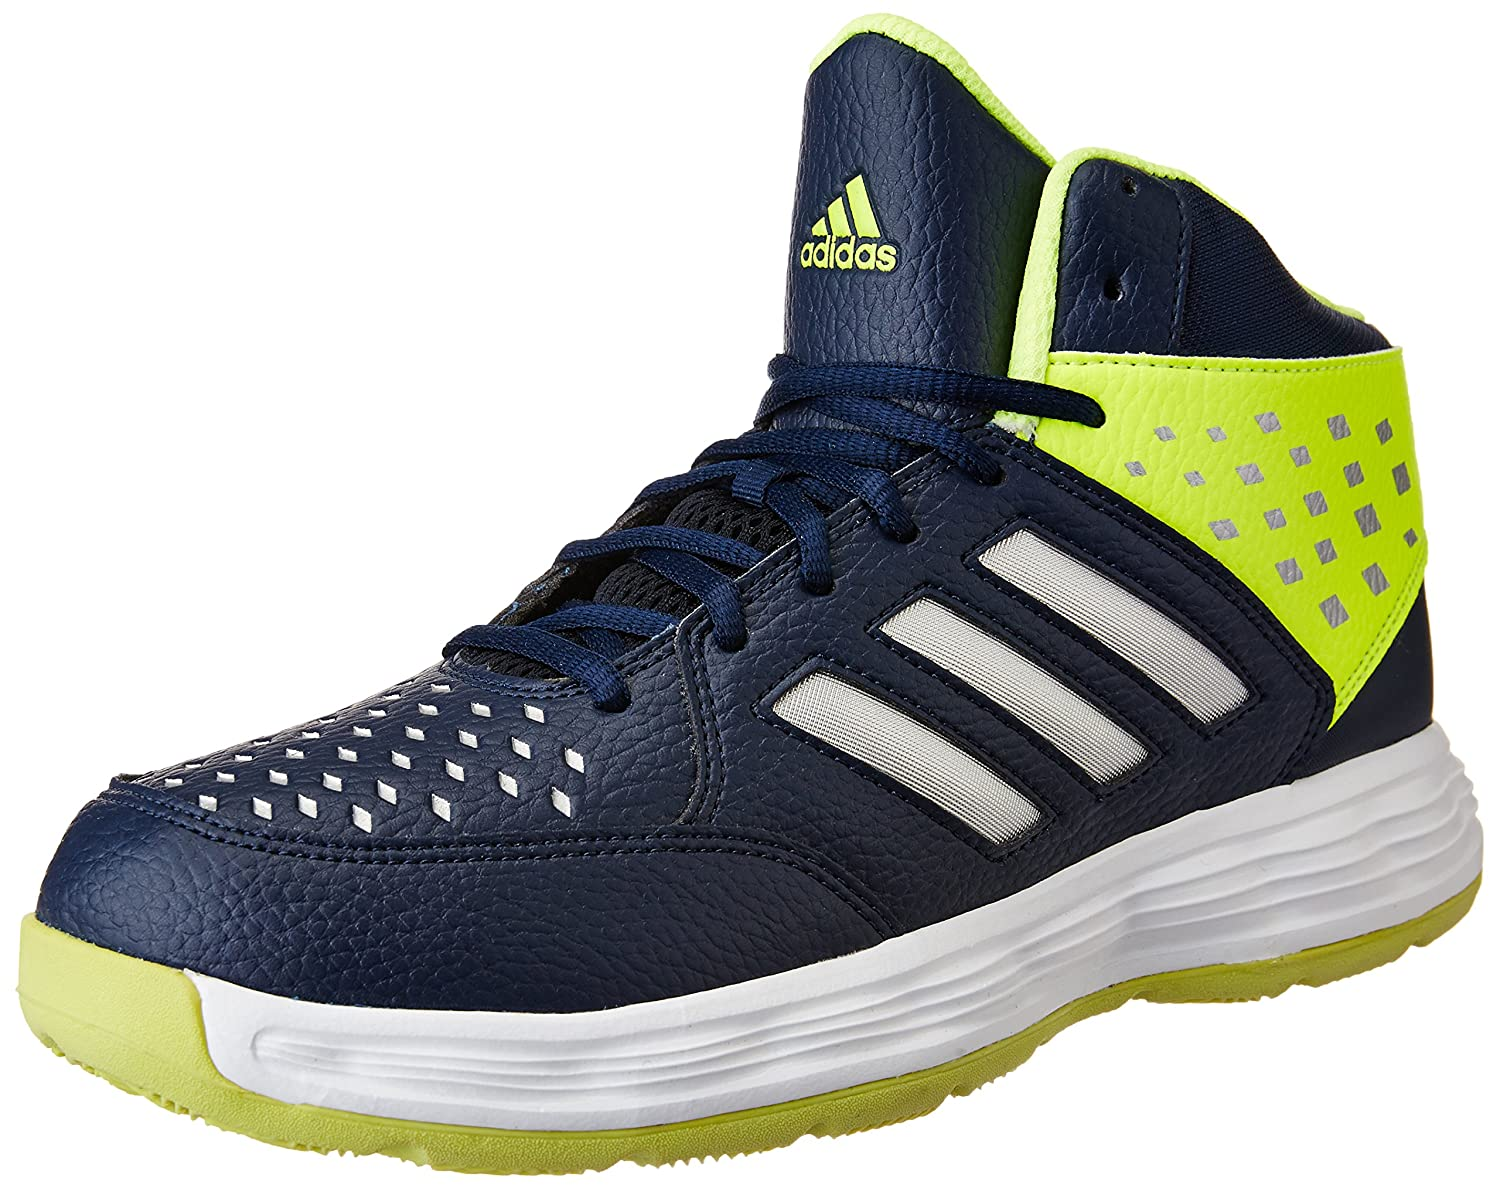 adidas basketball shoes. adidas men\u0027s basecut16 basketball shoes: buy online at low prices in india - amazon.in shoes o